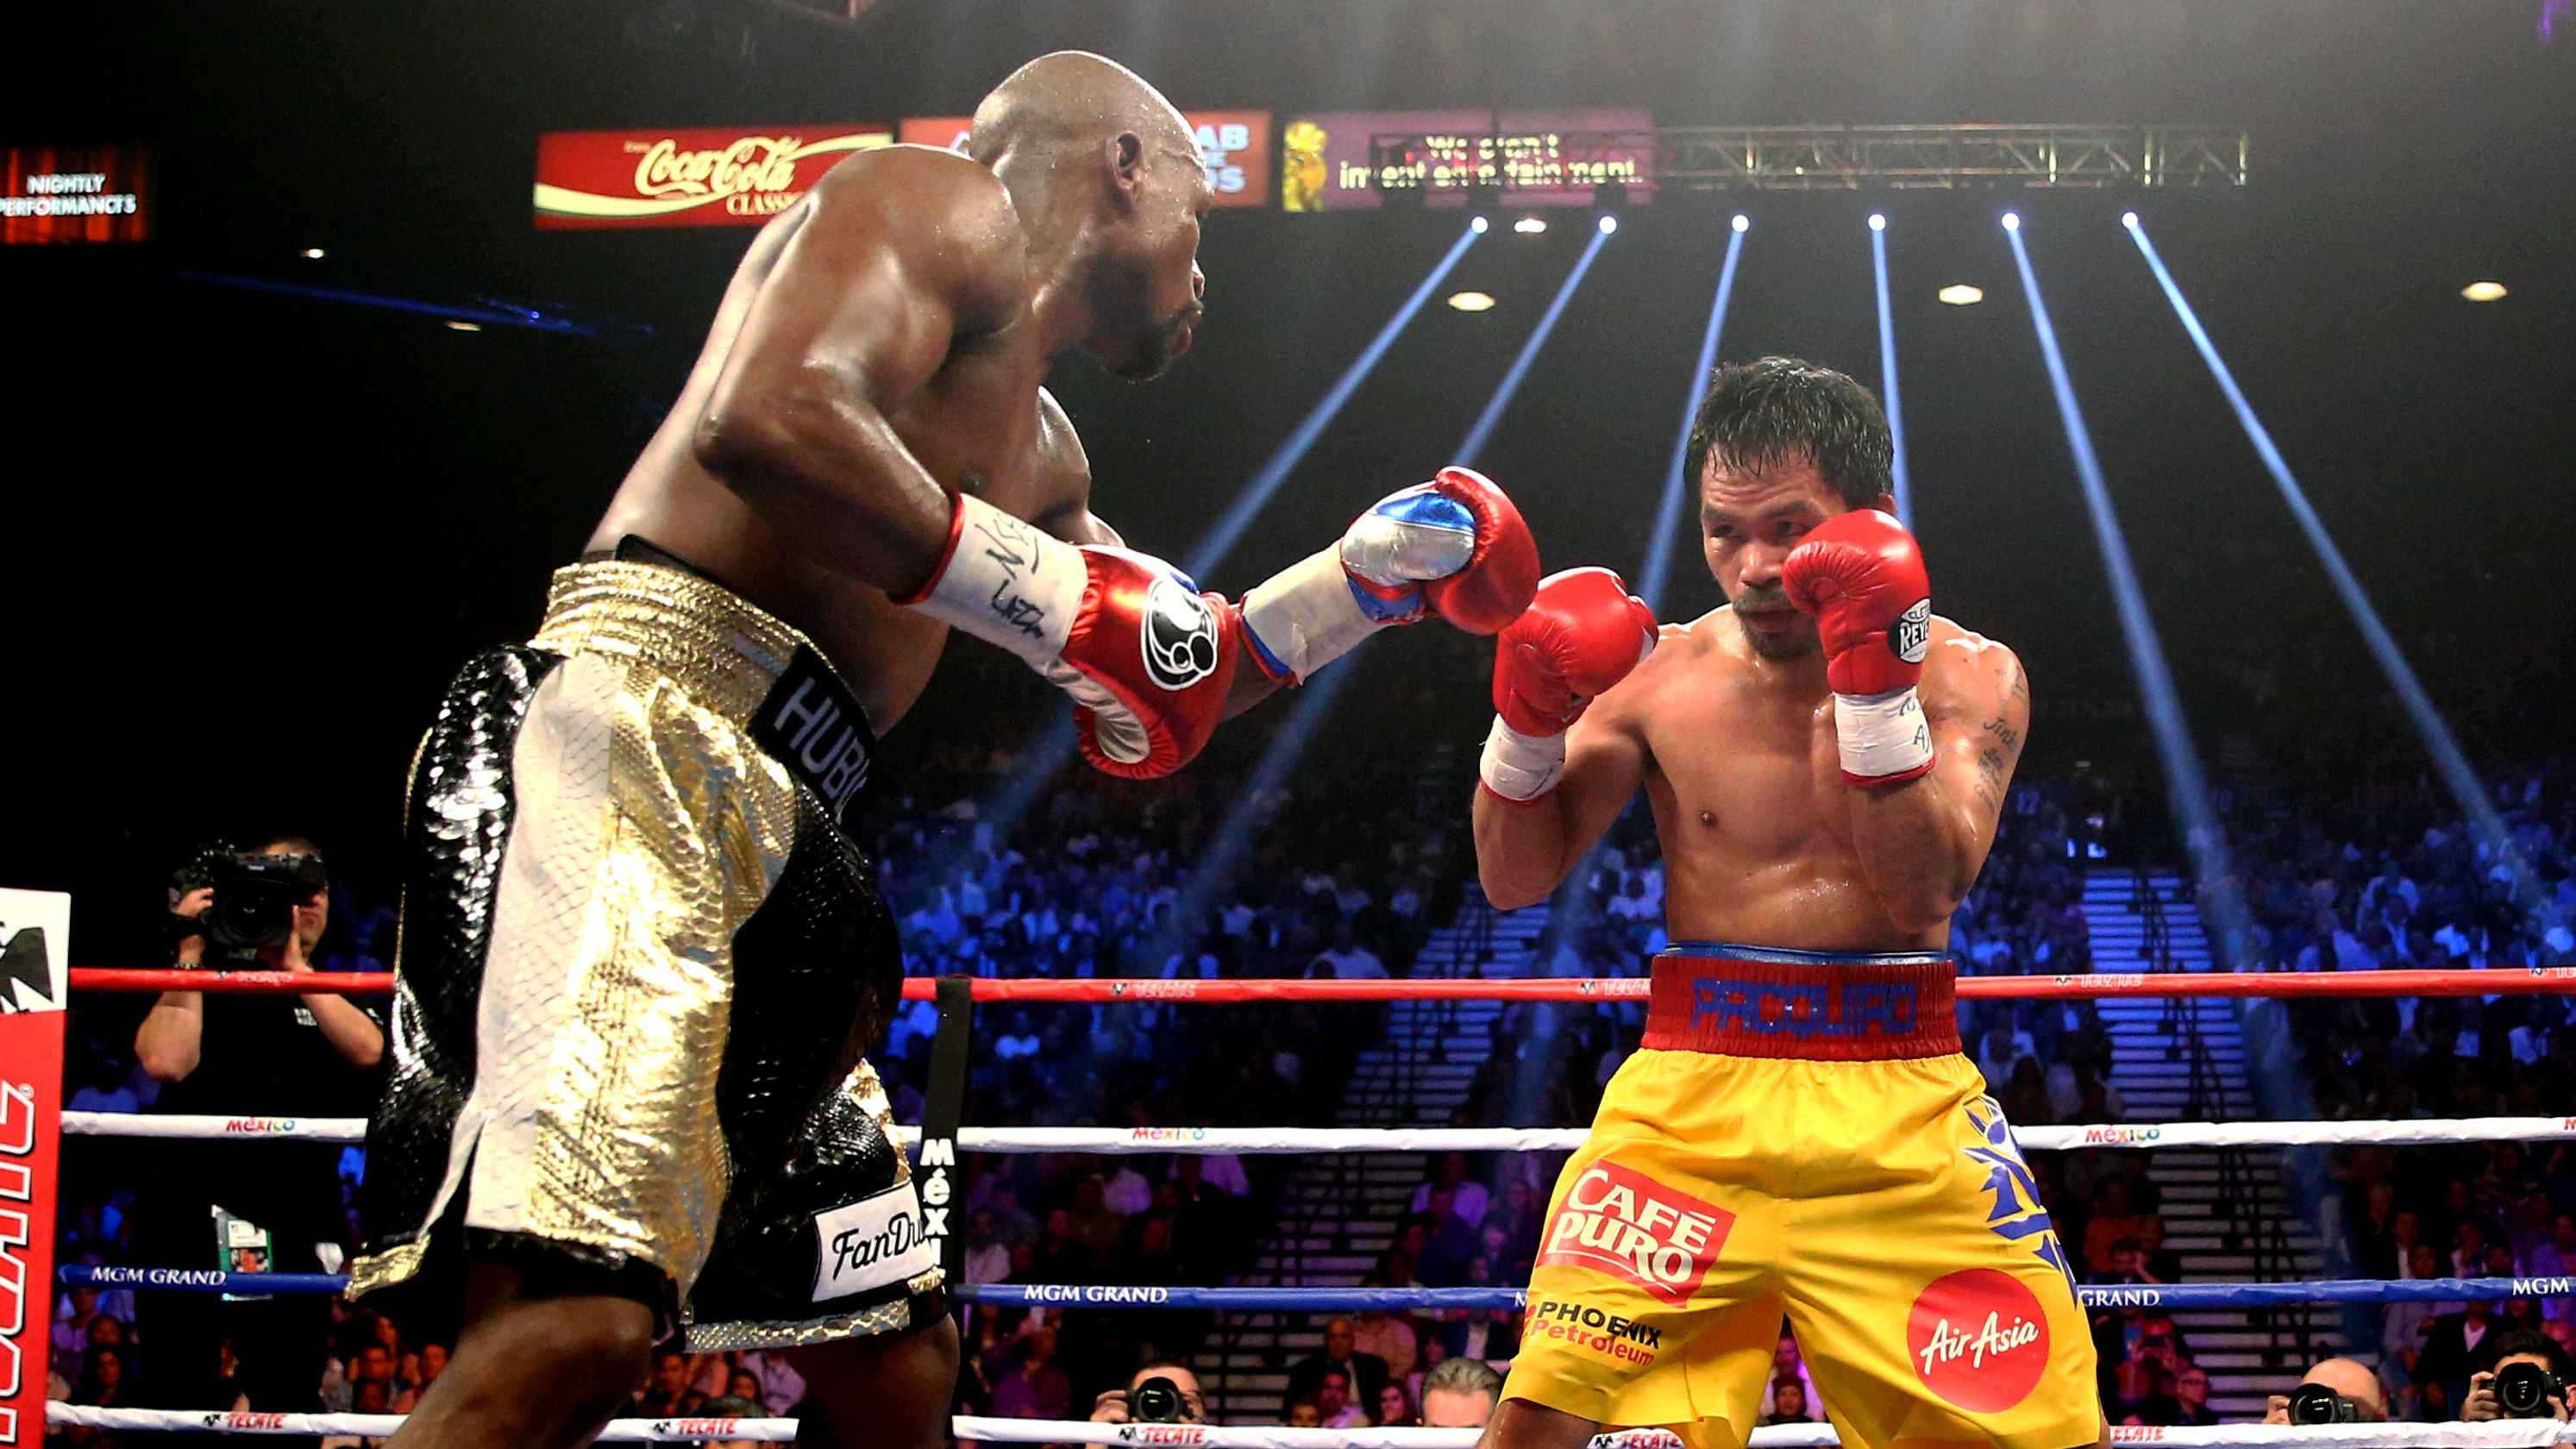 Floyd Mayweather Planning Tune-Up Fight in Japan Before Pacquiao Rematch